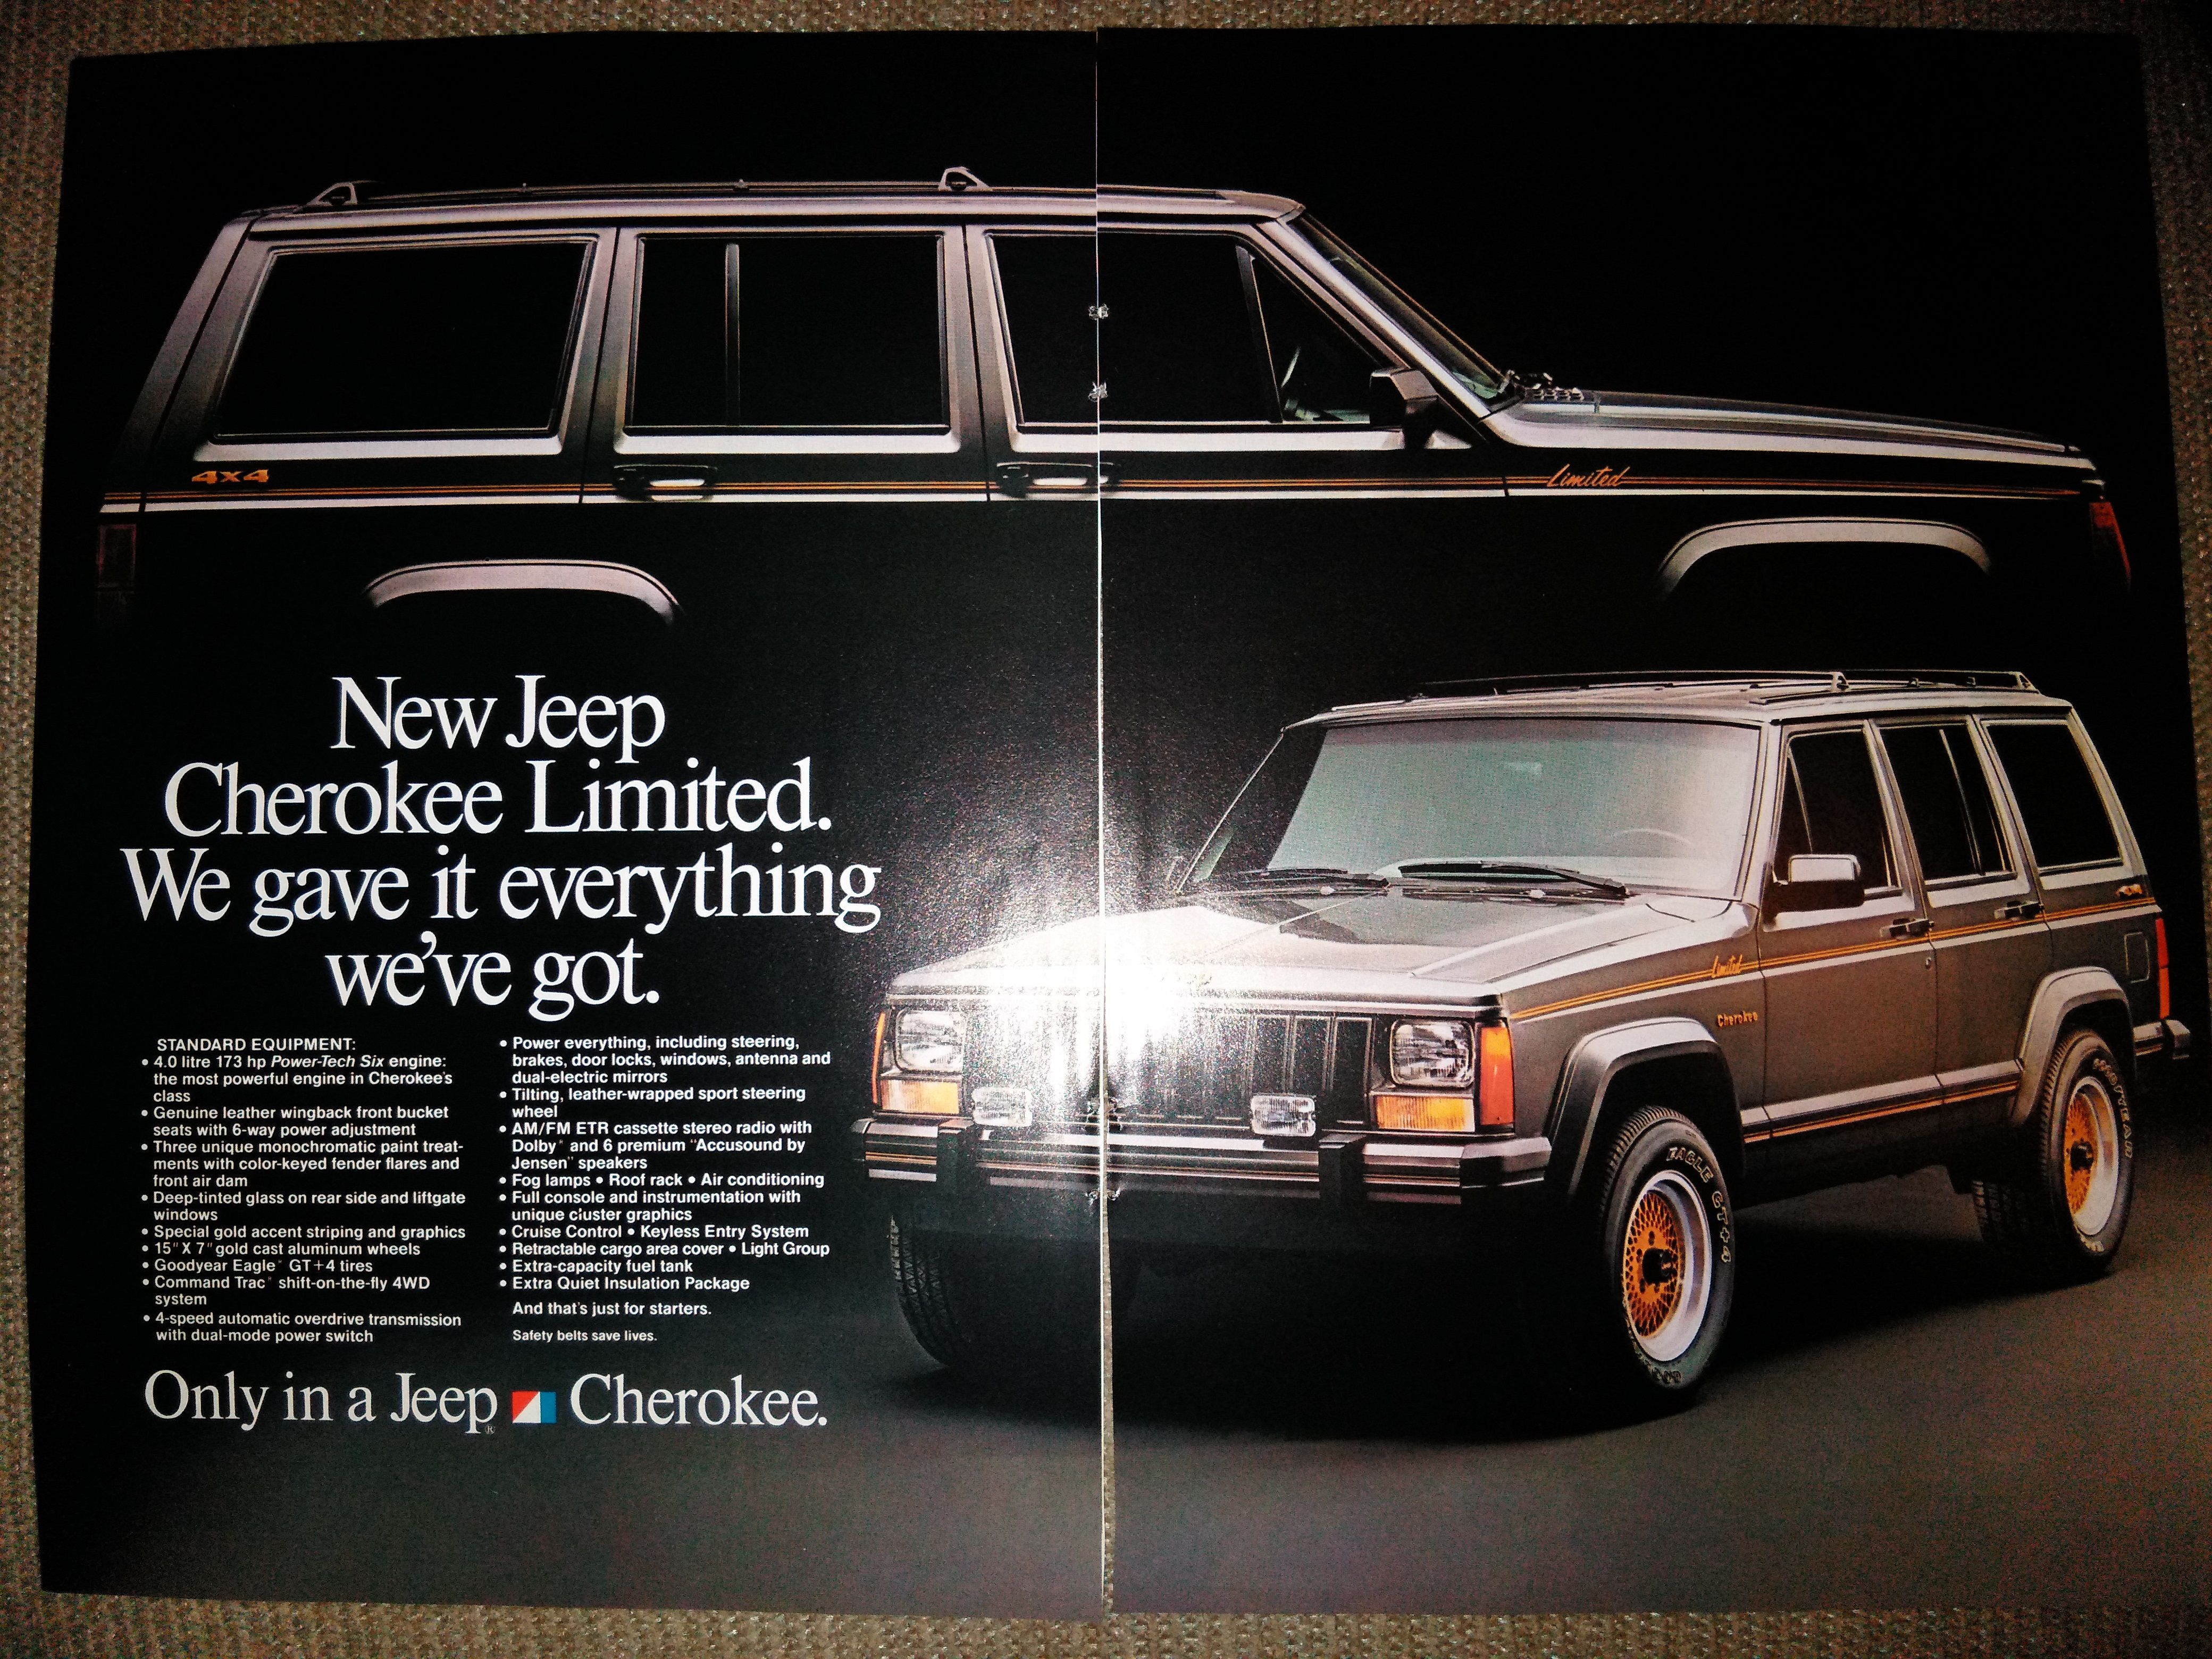 1987 Jeep Cherokee Limited ad from National Geographic, May 1987 ...